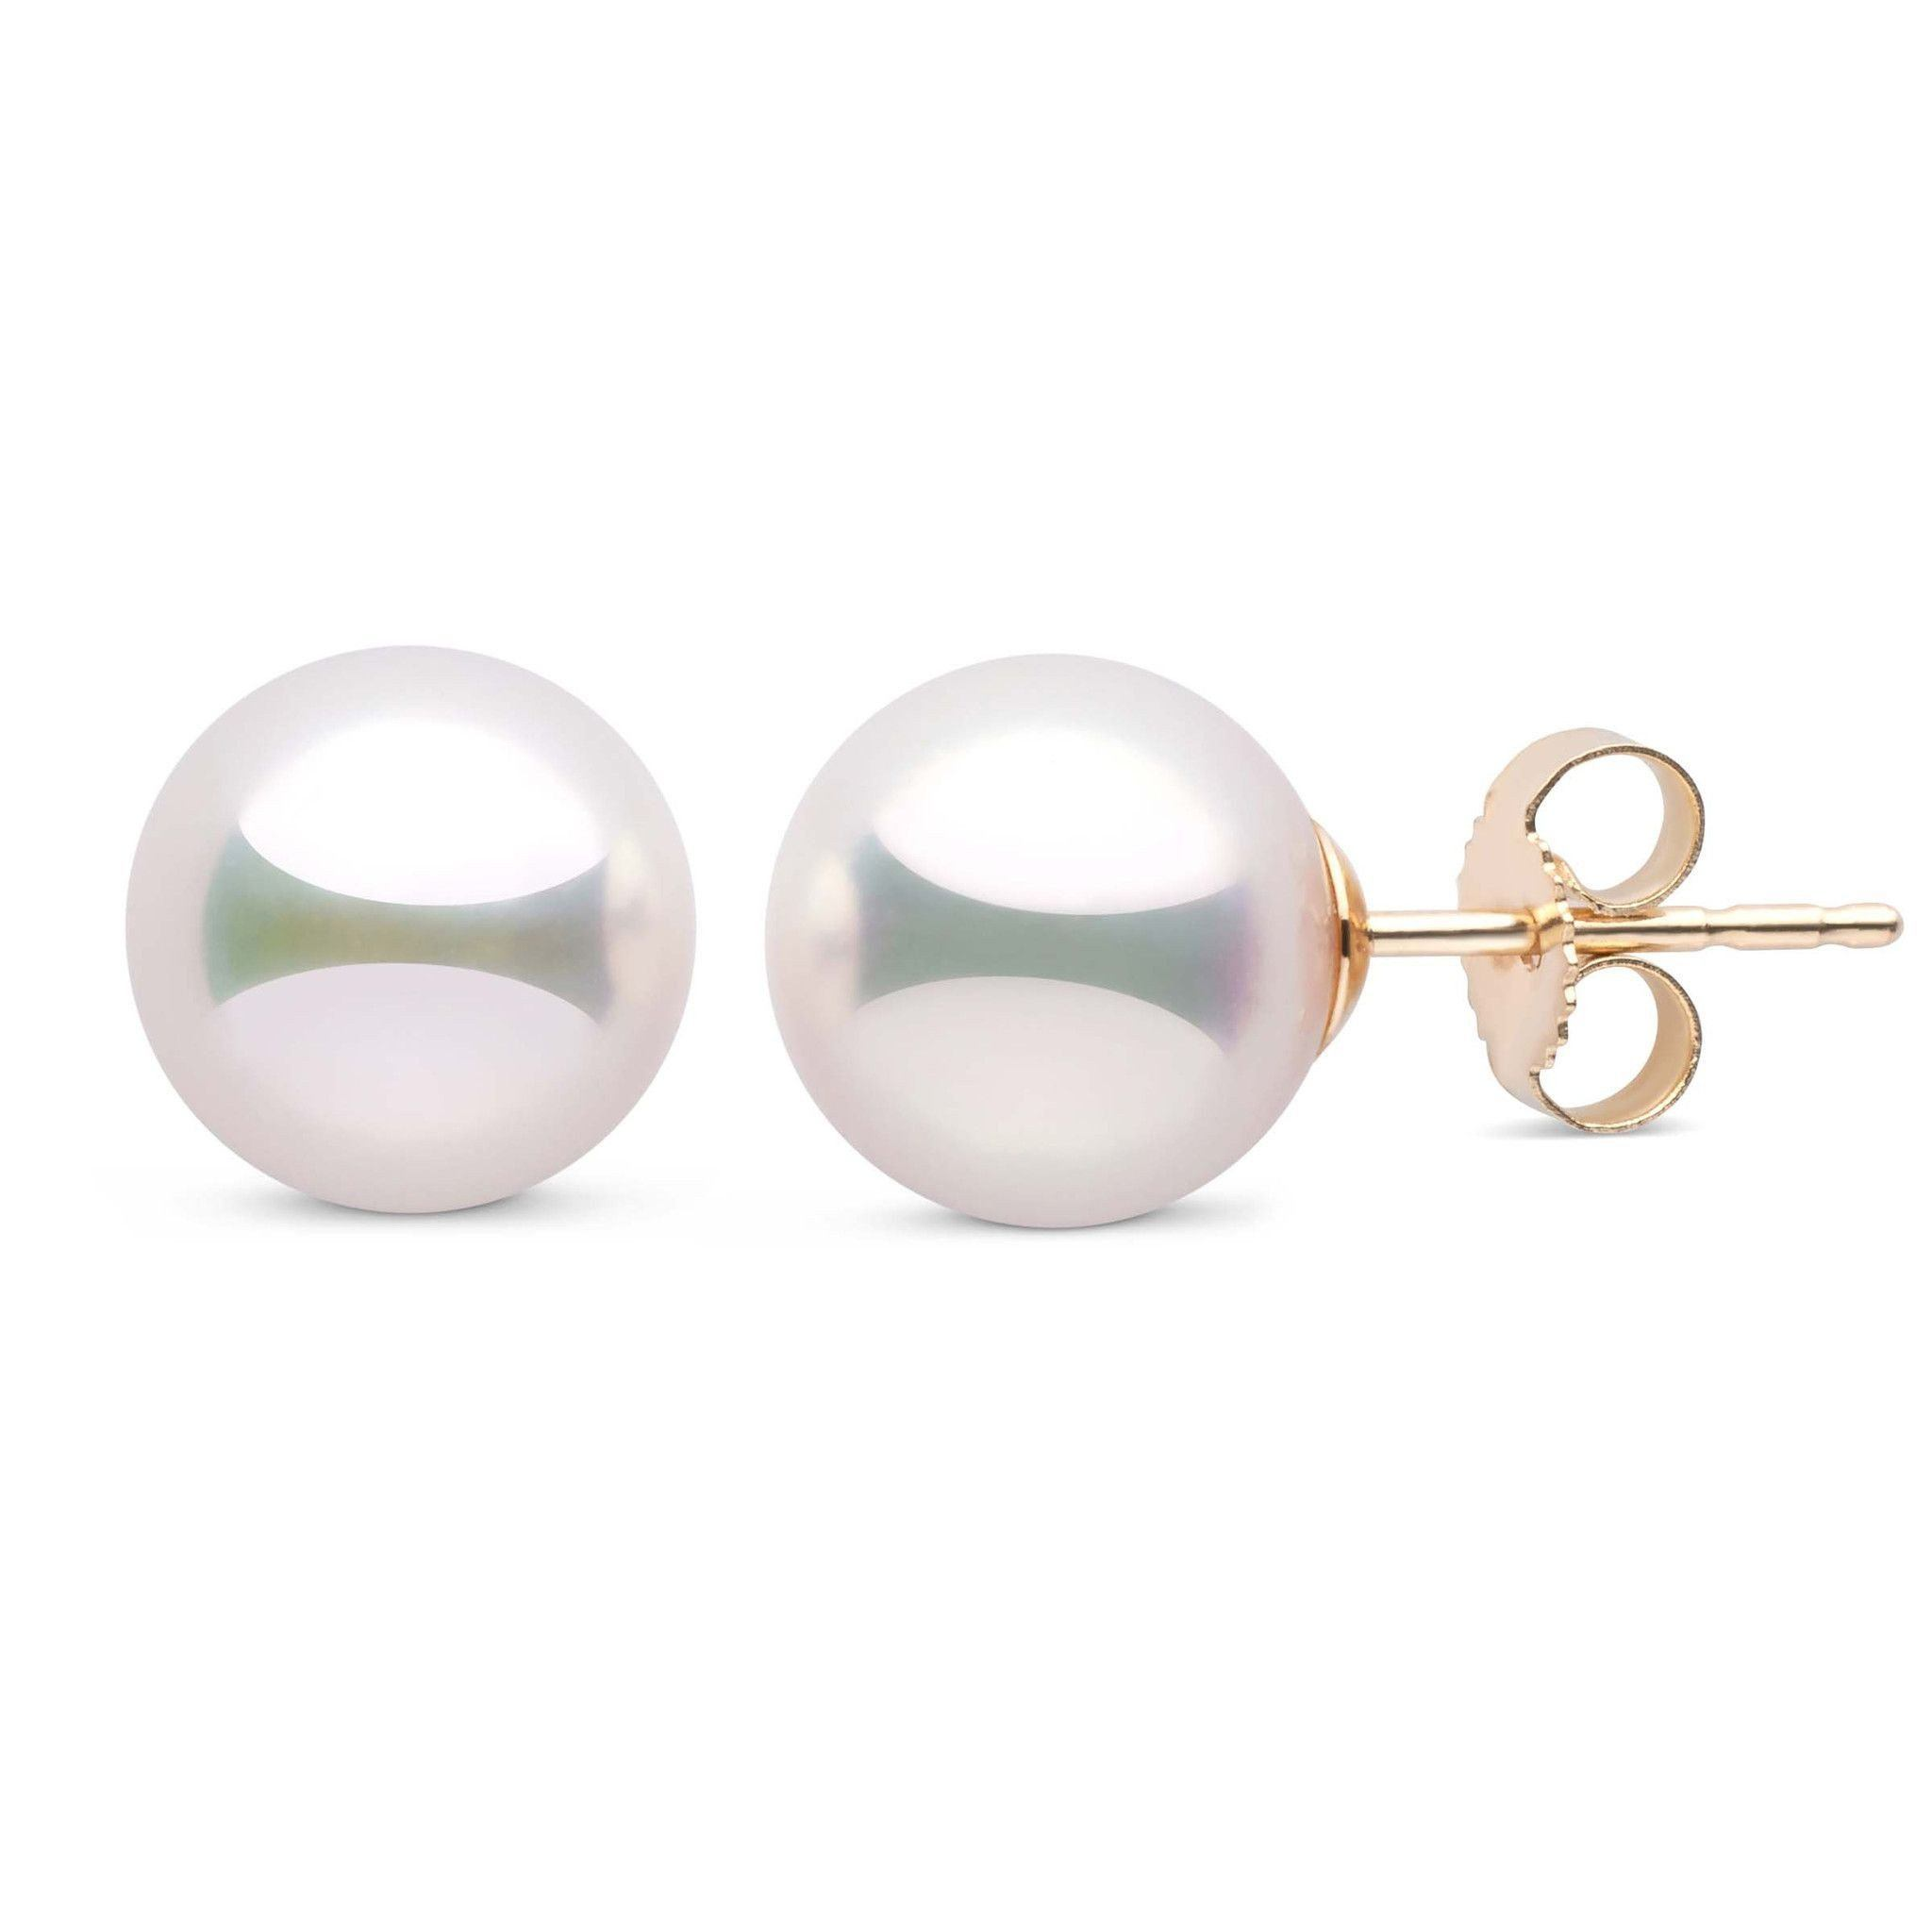 9.0-9.5 mm White Hanadama Pearl Stud Earrings